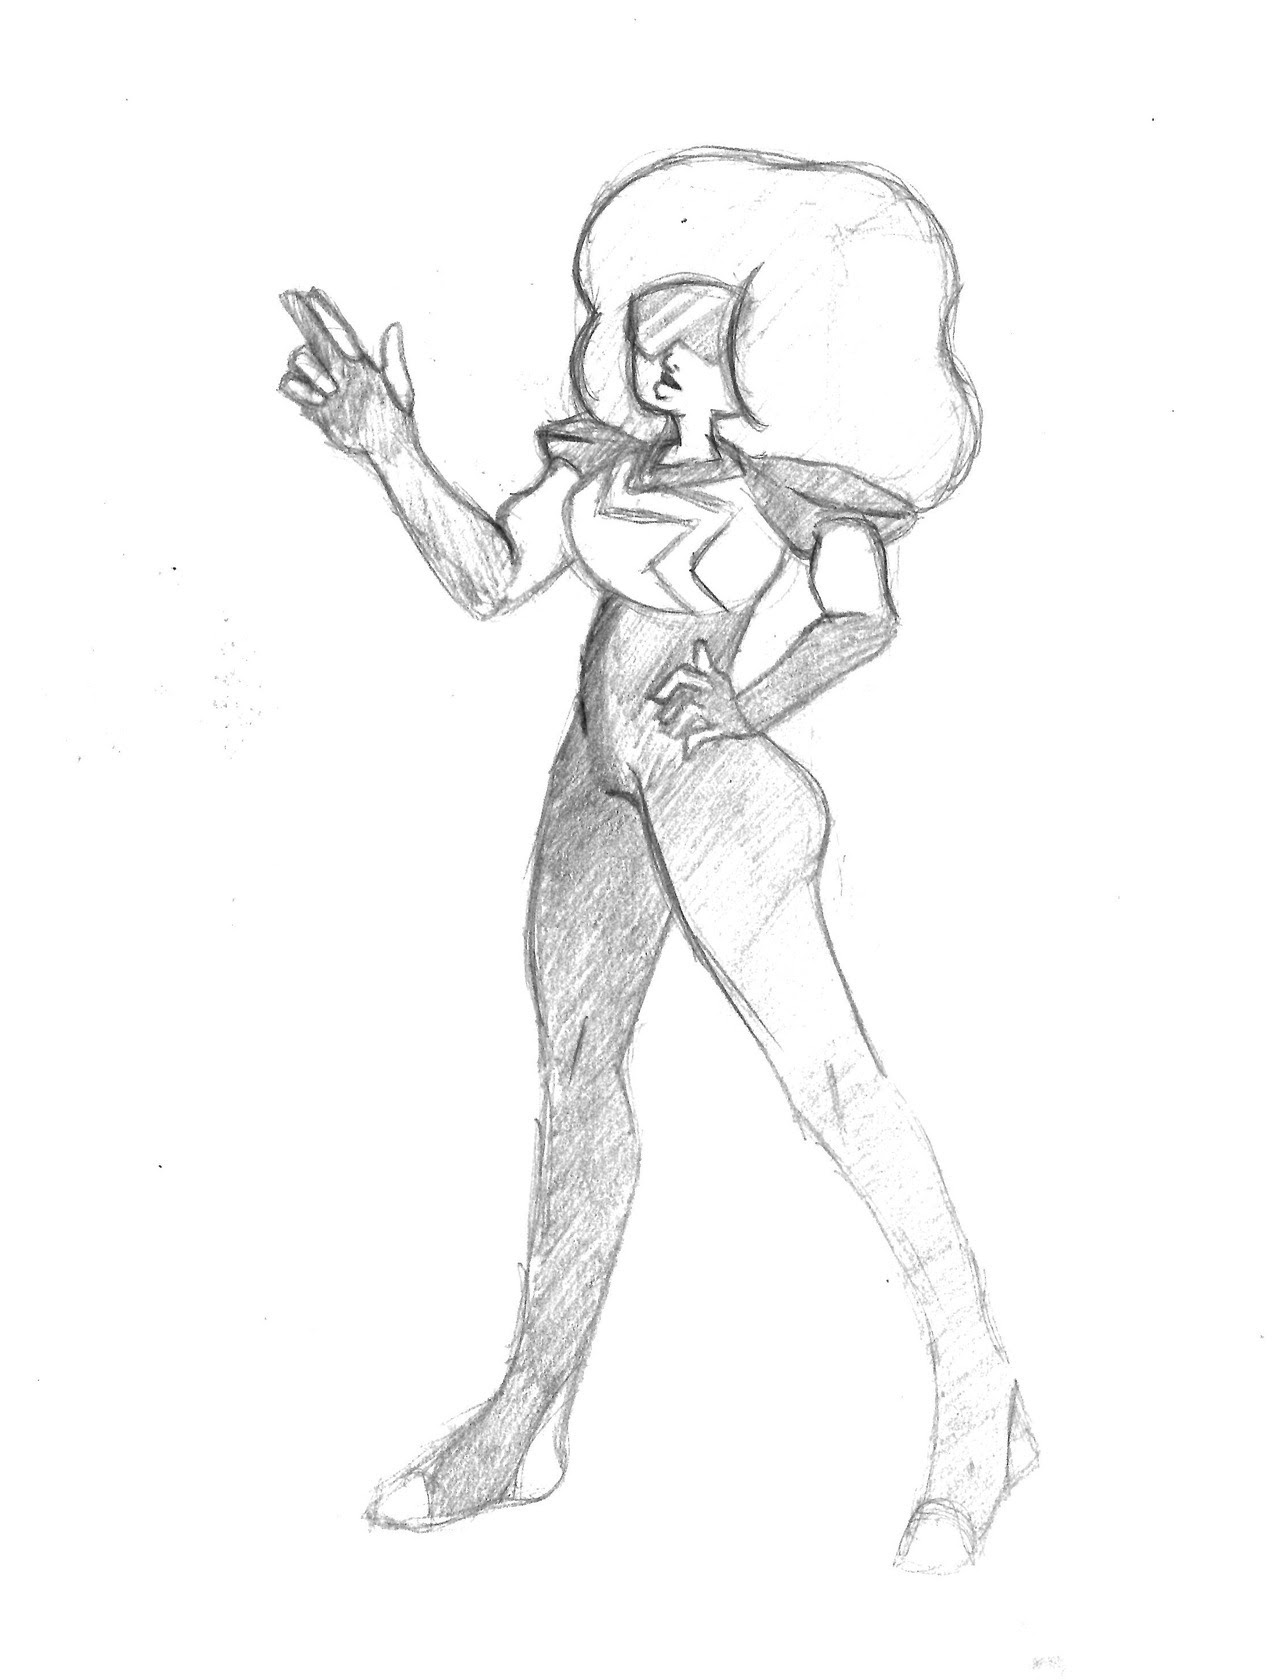 prolly wont get much out today, have garnet